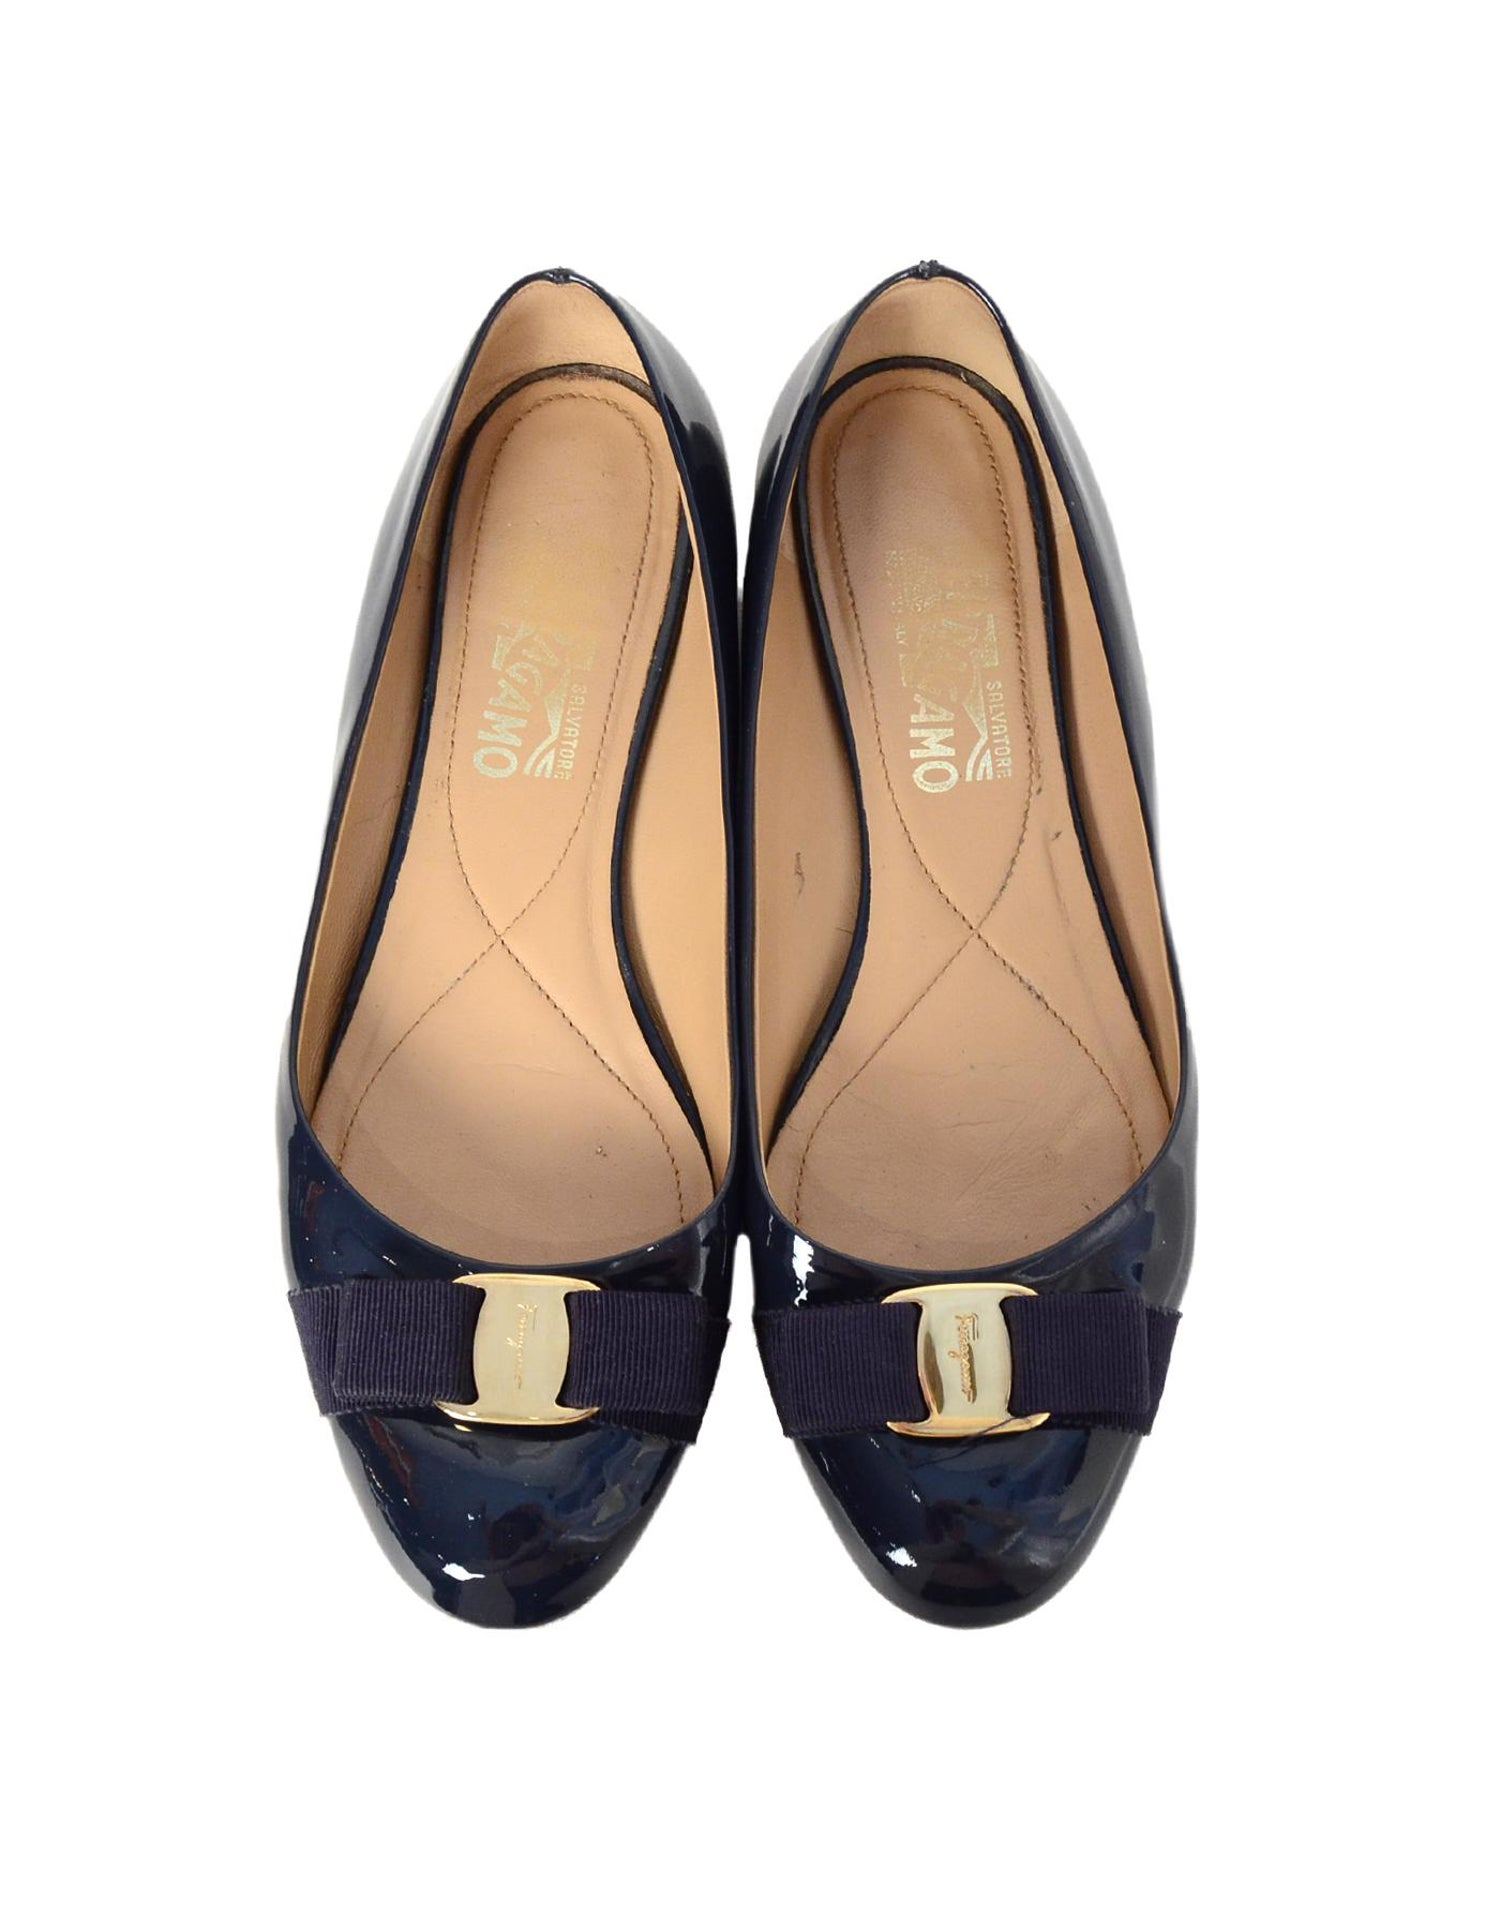 6aee55bf2 Salvatore Ferragamo Navy Patent Leather Bow Ballet Flats Sz 9.5 For Sale at  1stdibs